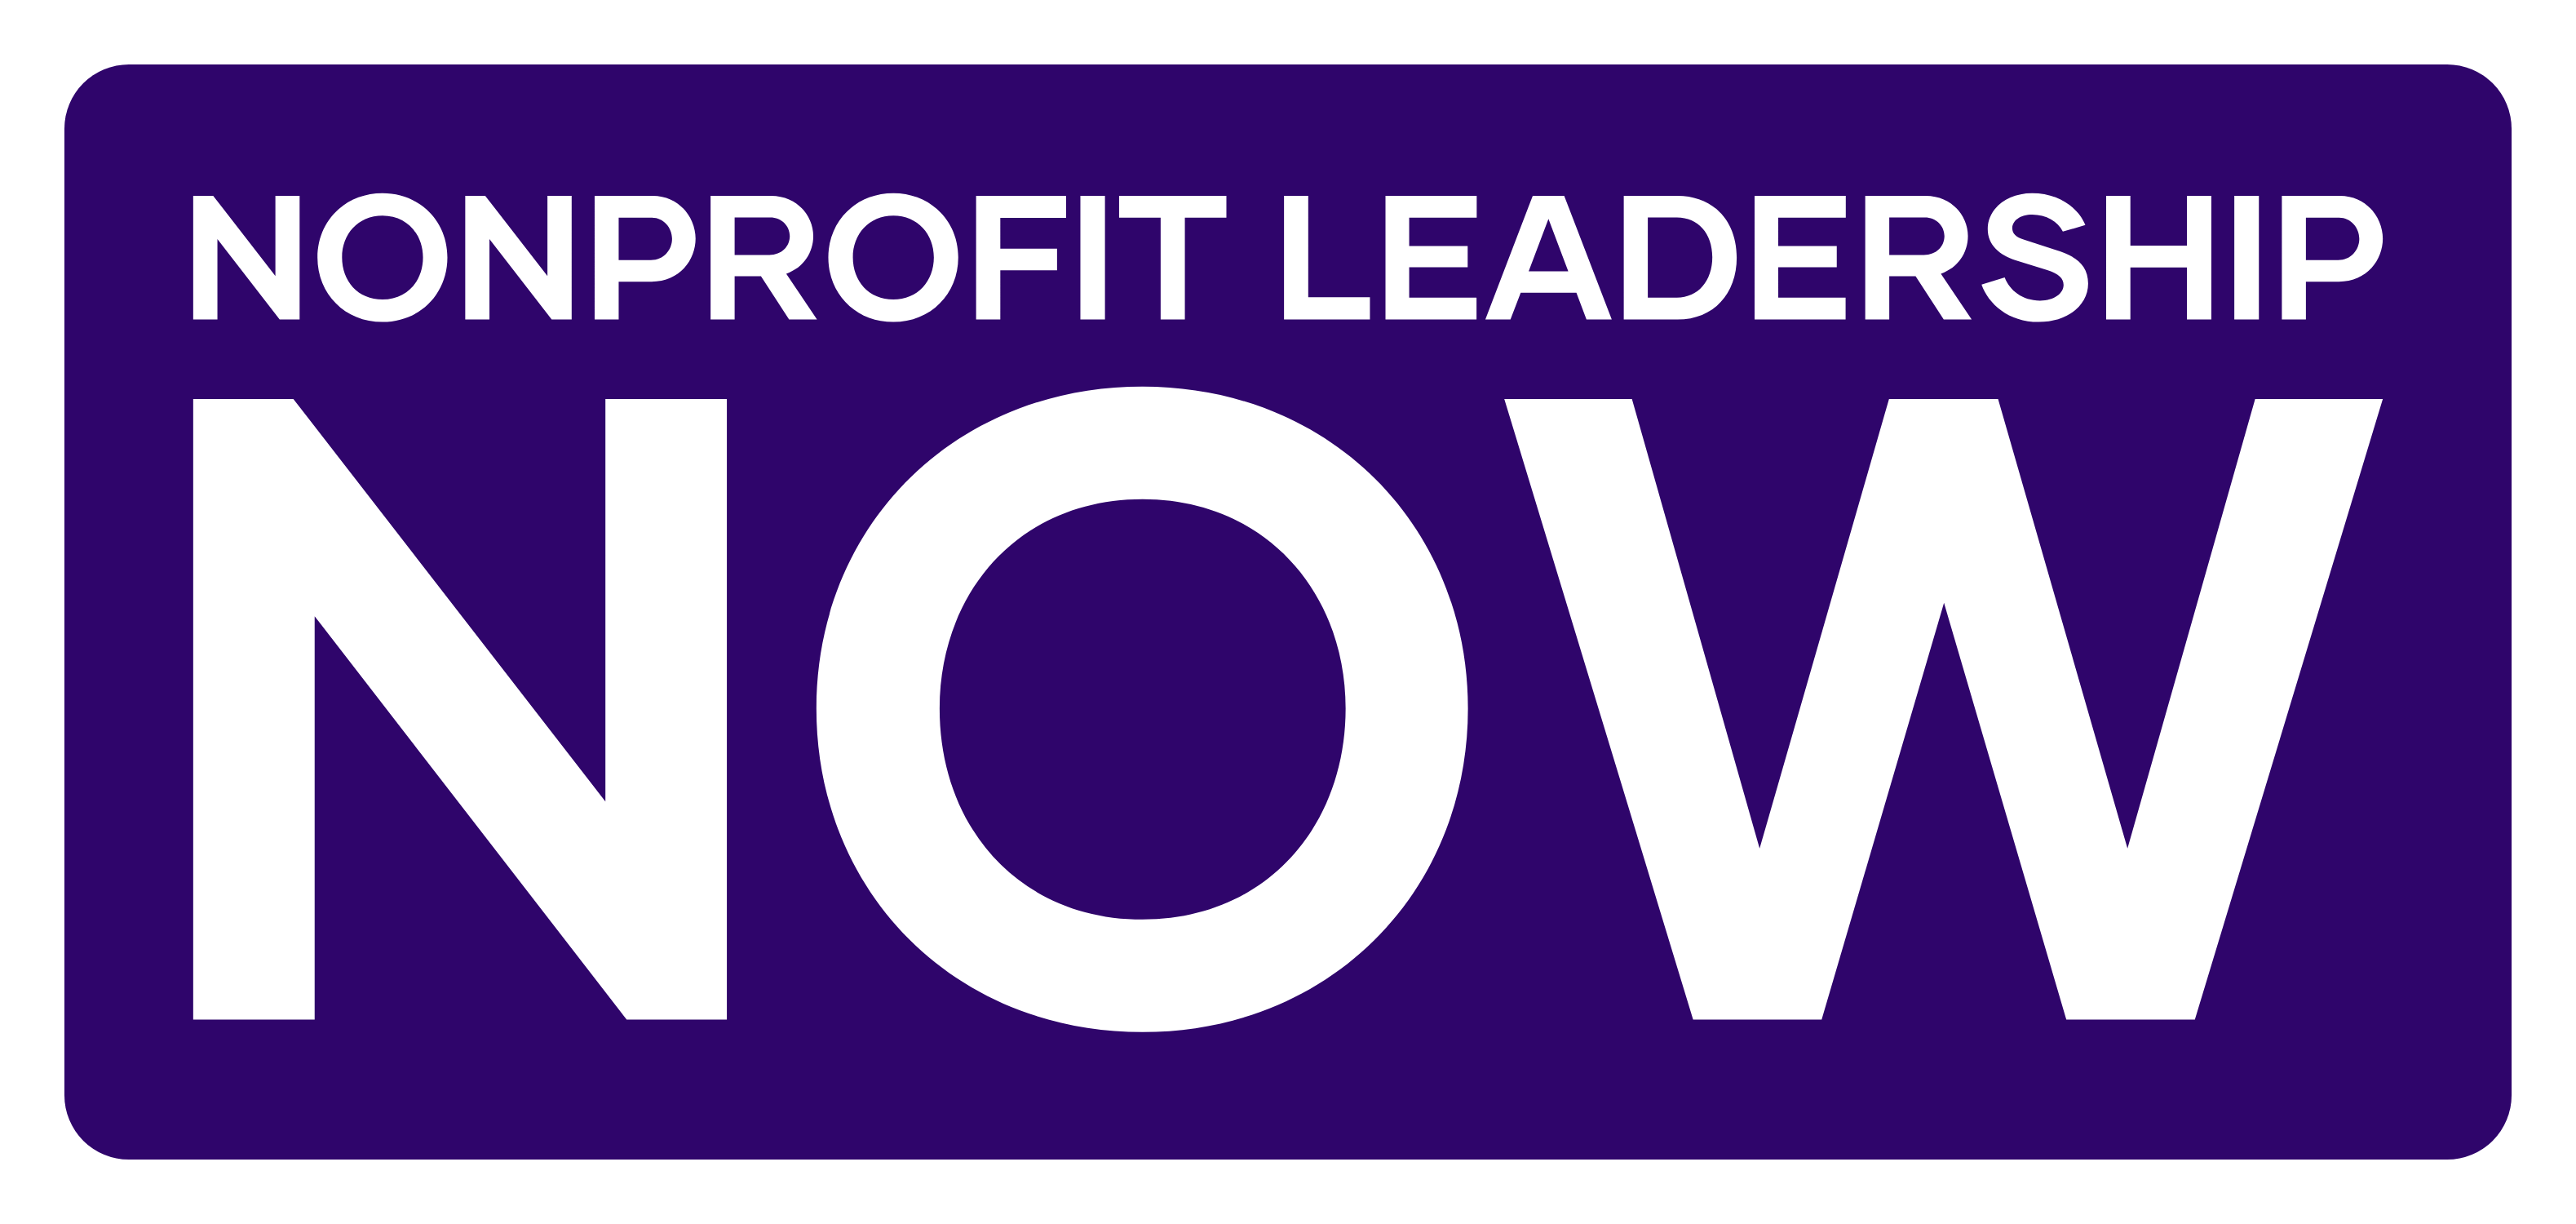 nonprofit leadership now